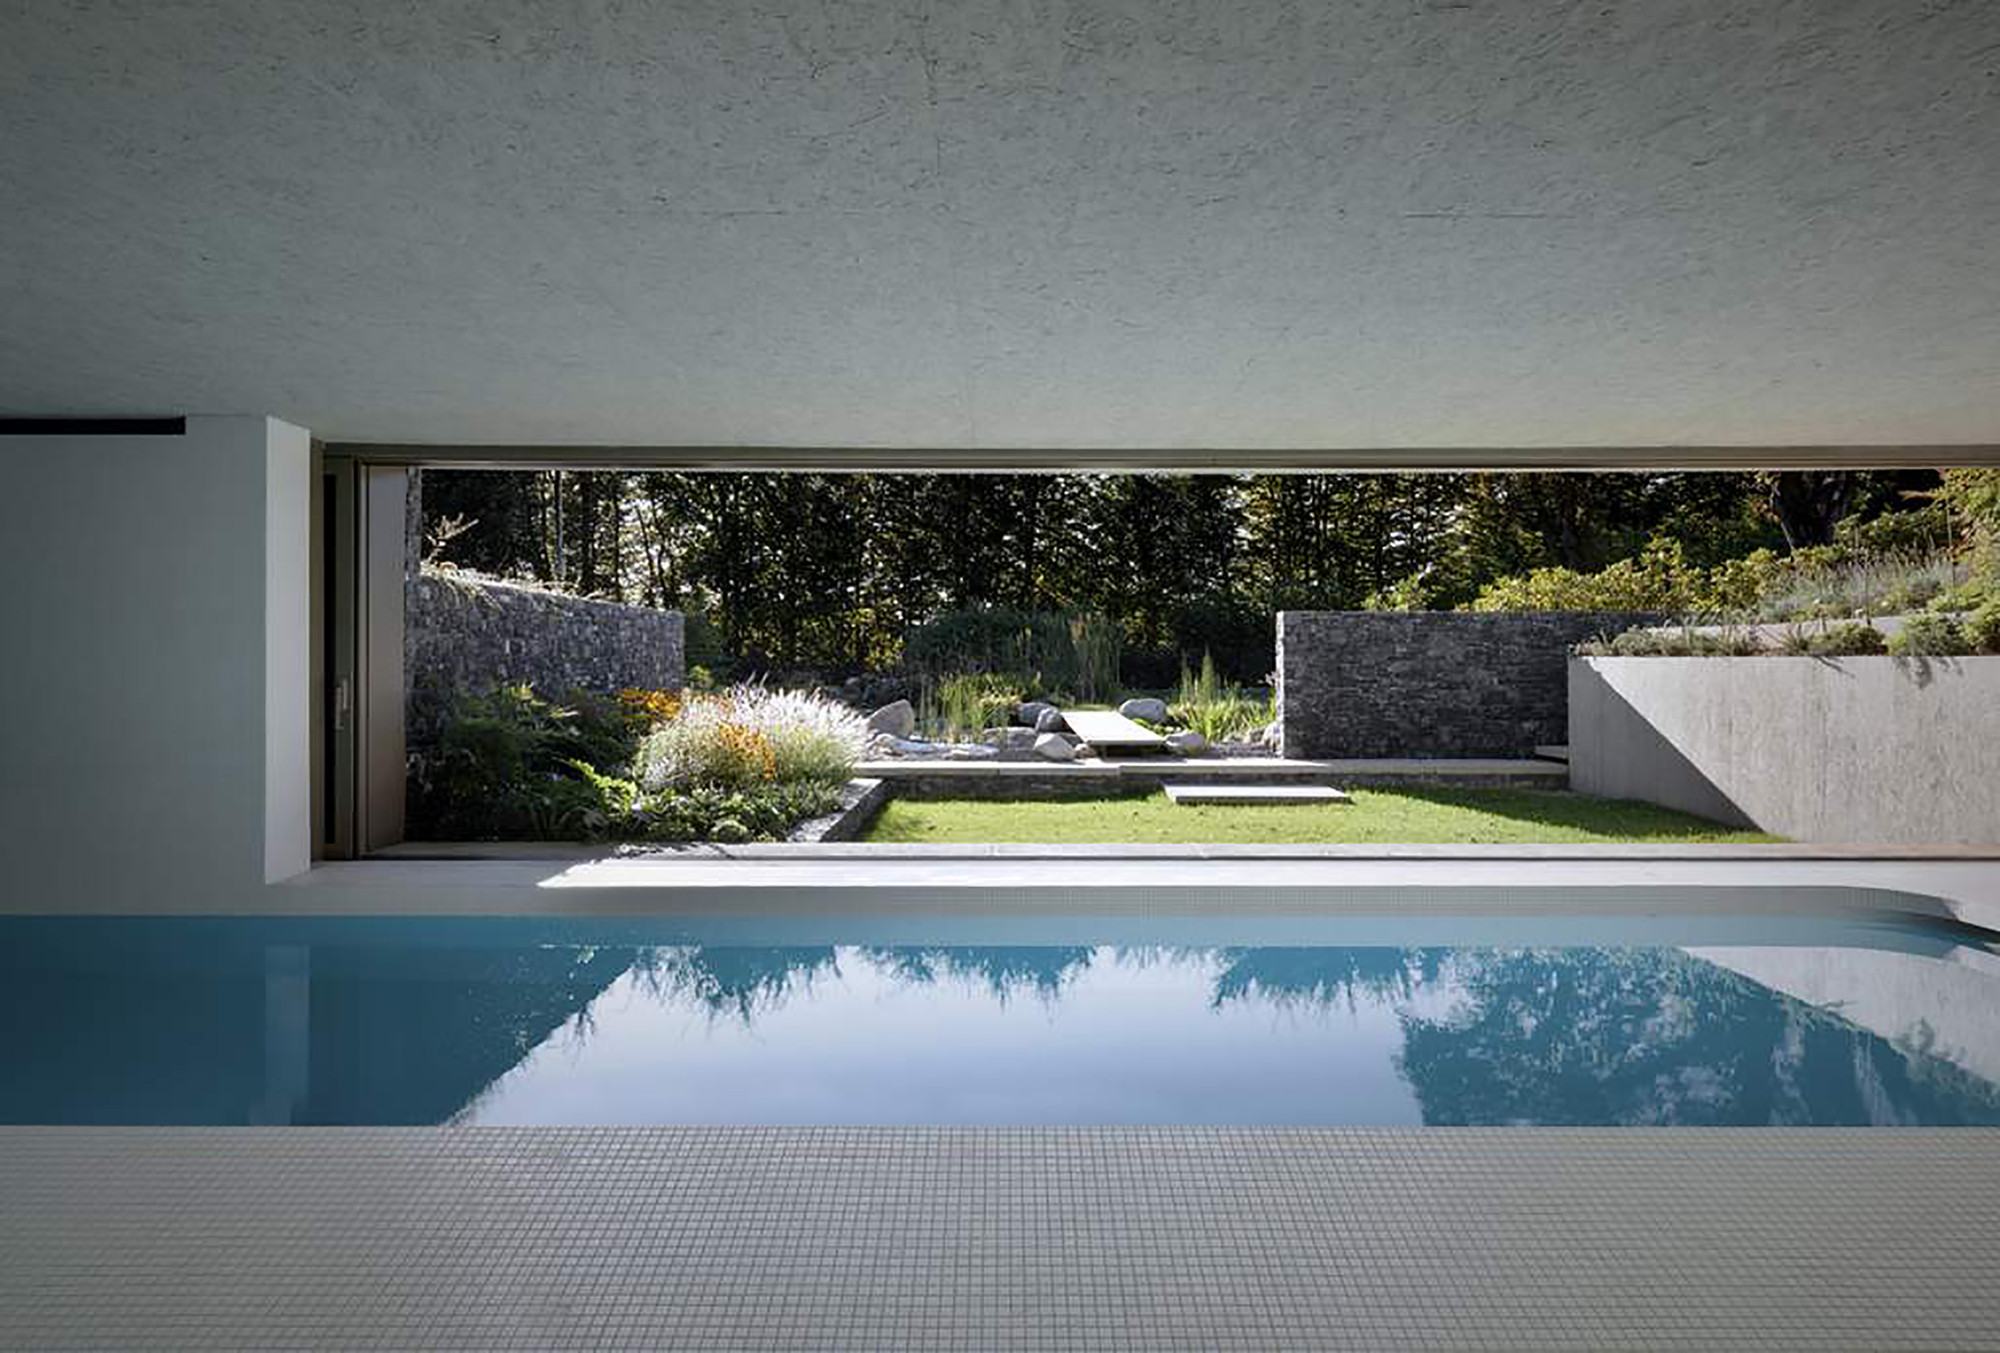 Gallery of roccolo s swimming pool act romegialli 15 for Piscina pool